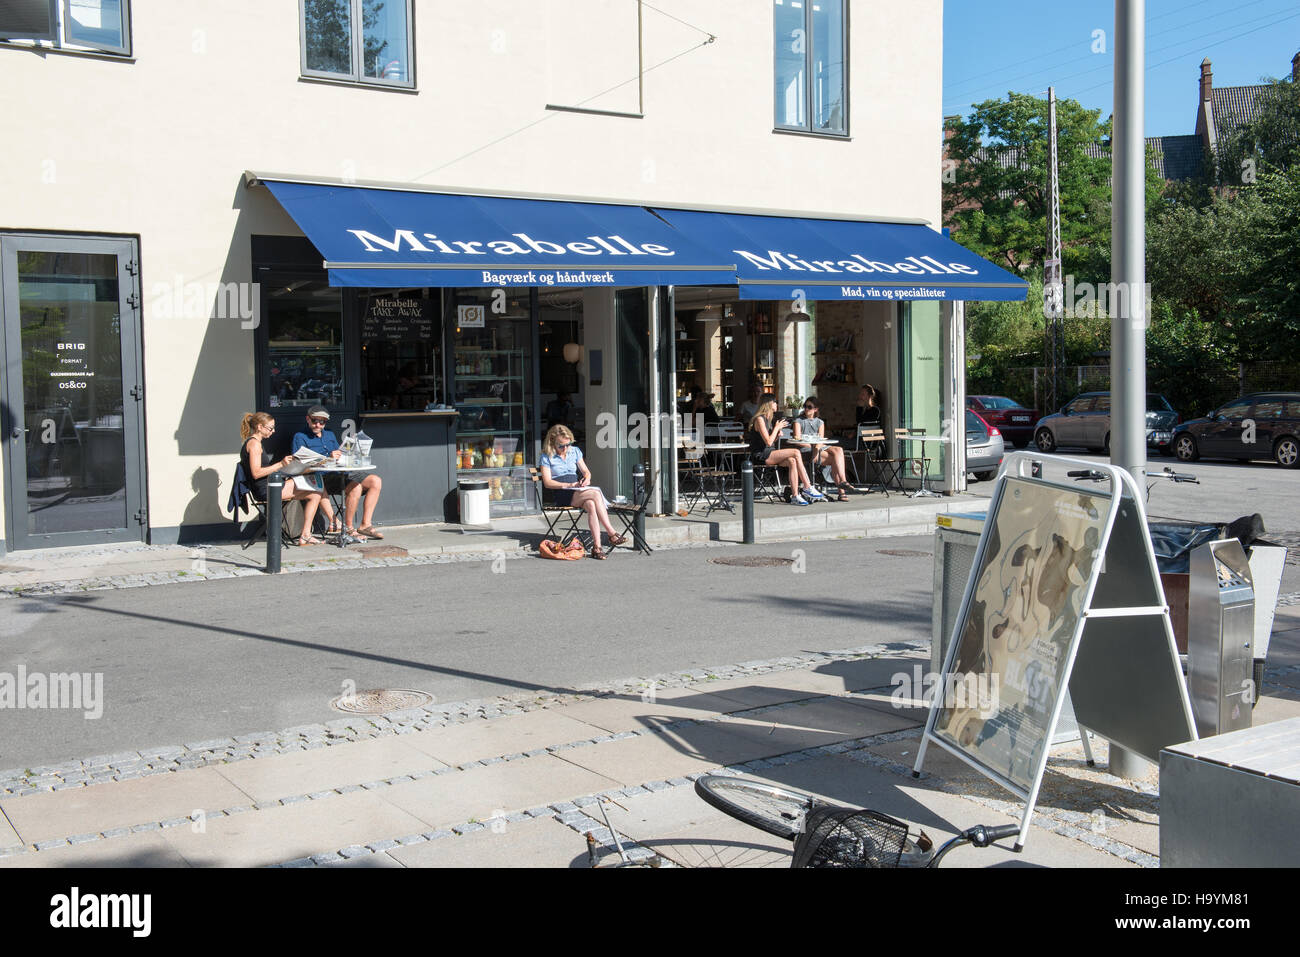 Mirabelle restaurant in Copenhagen on a sunny day with people sitting outside in the sun - Stock Image